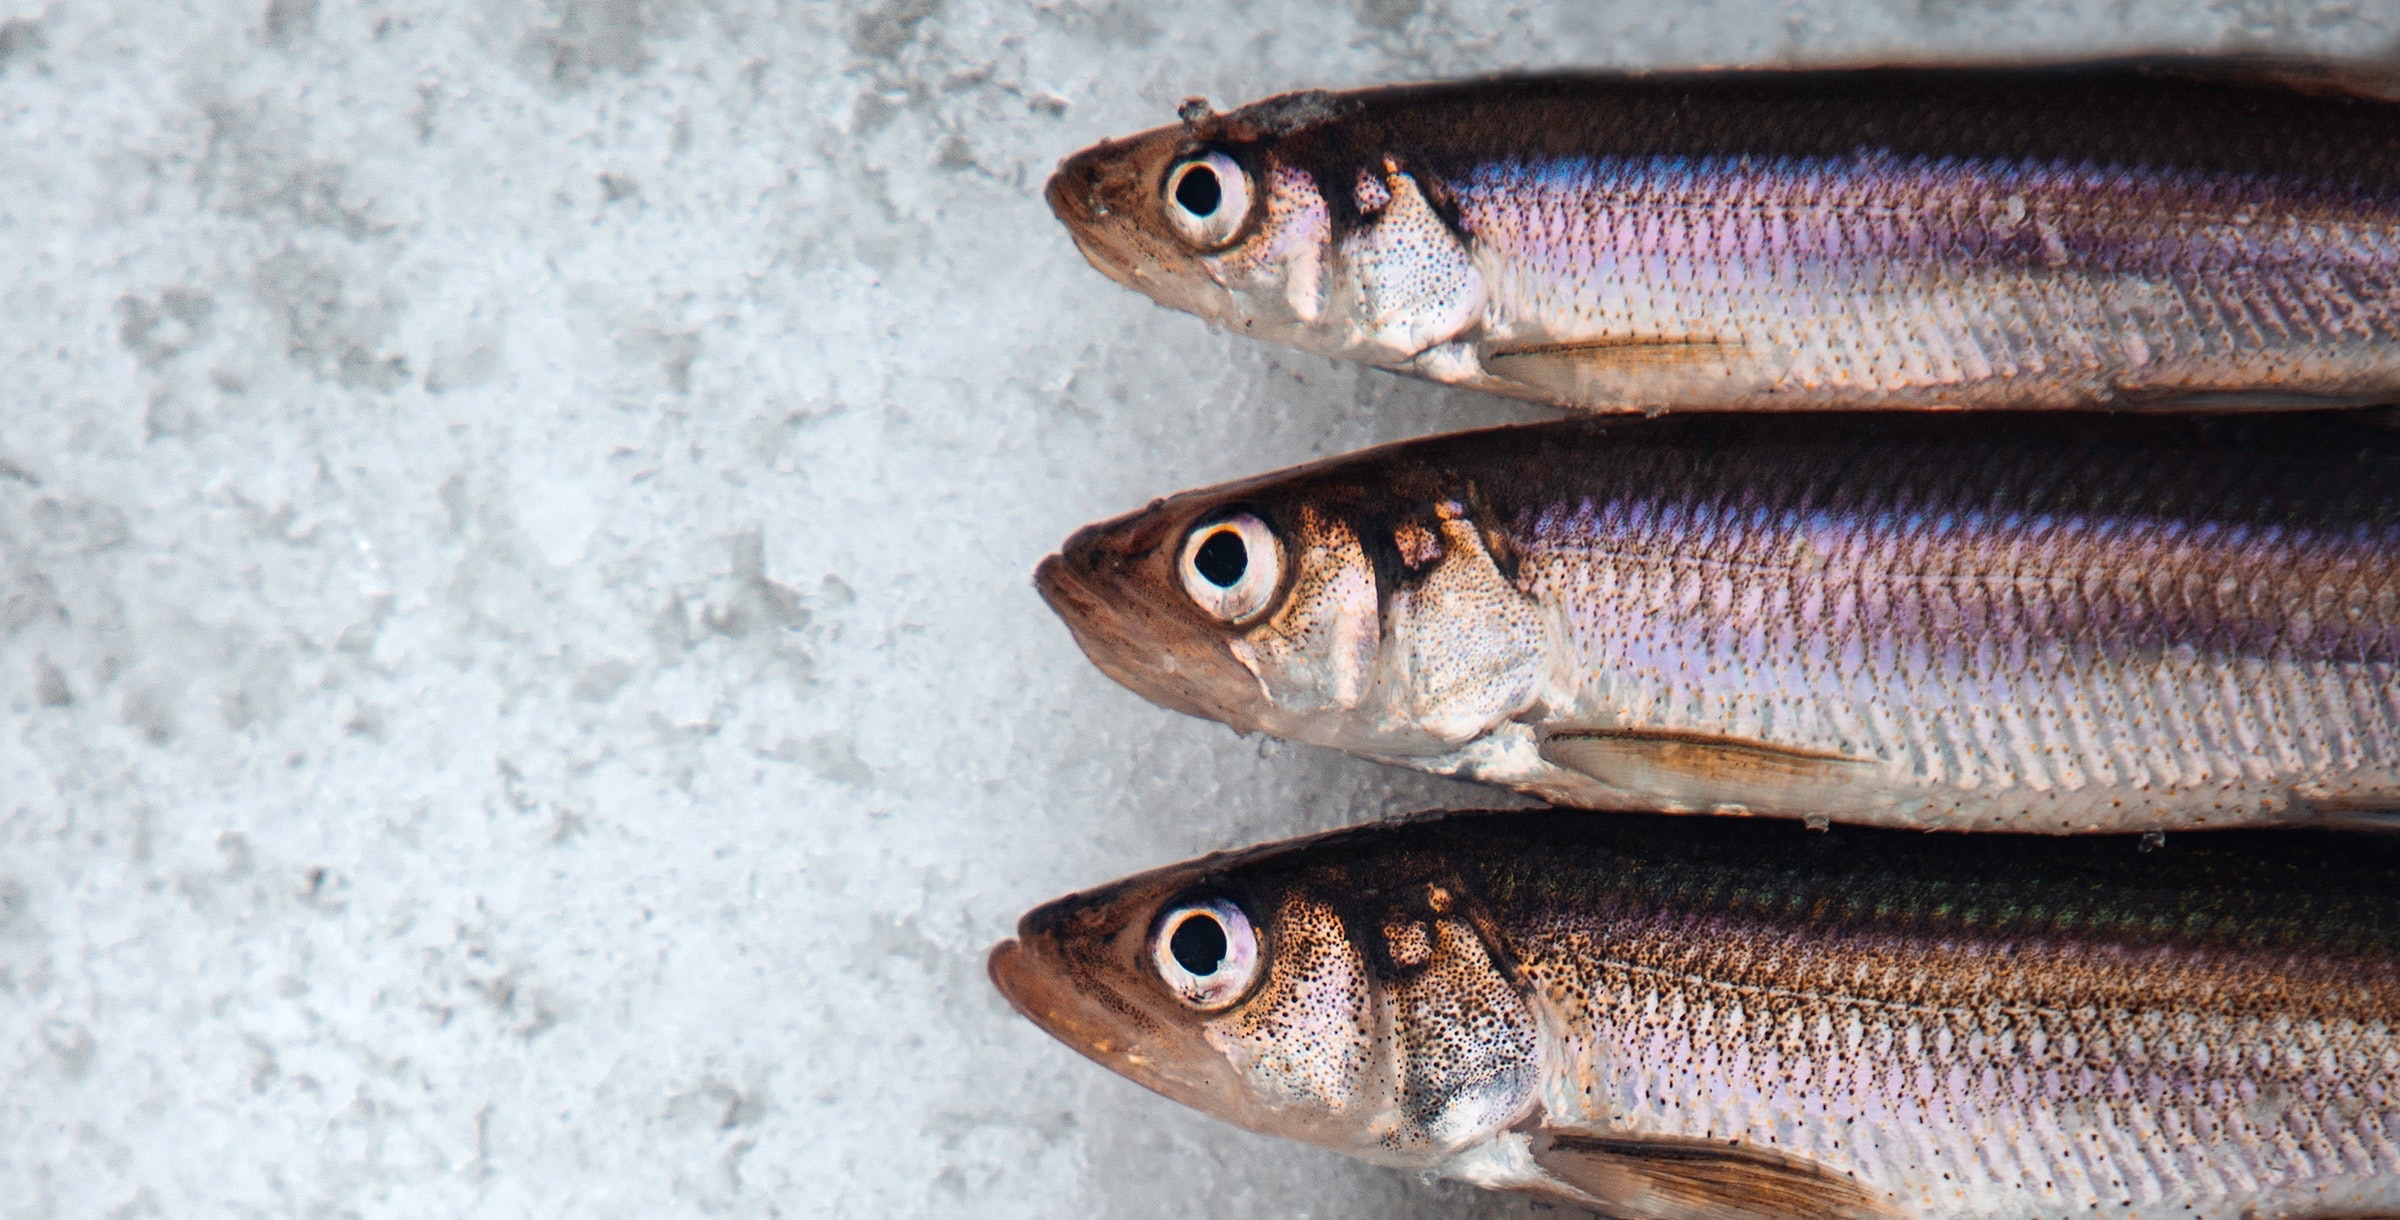 Image of mullet fish